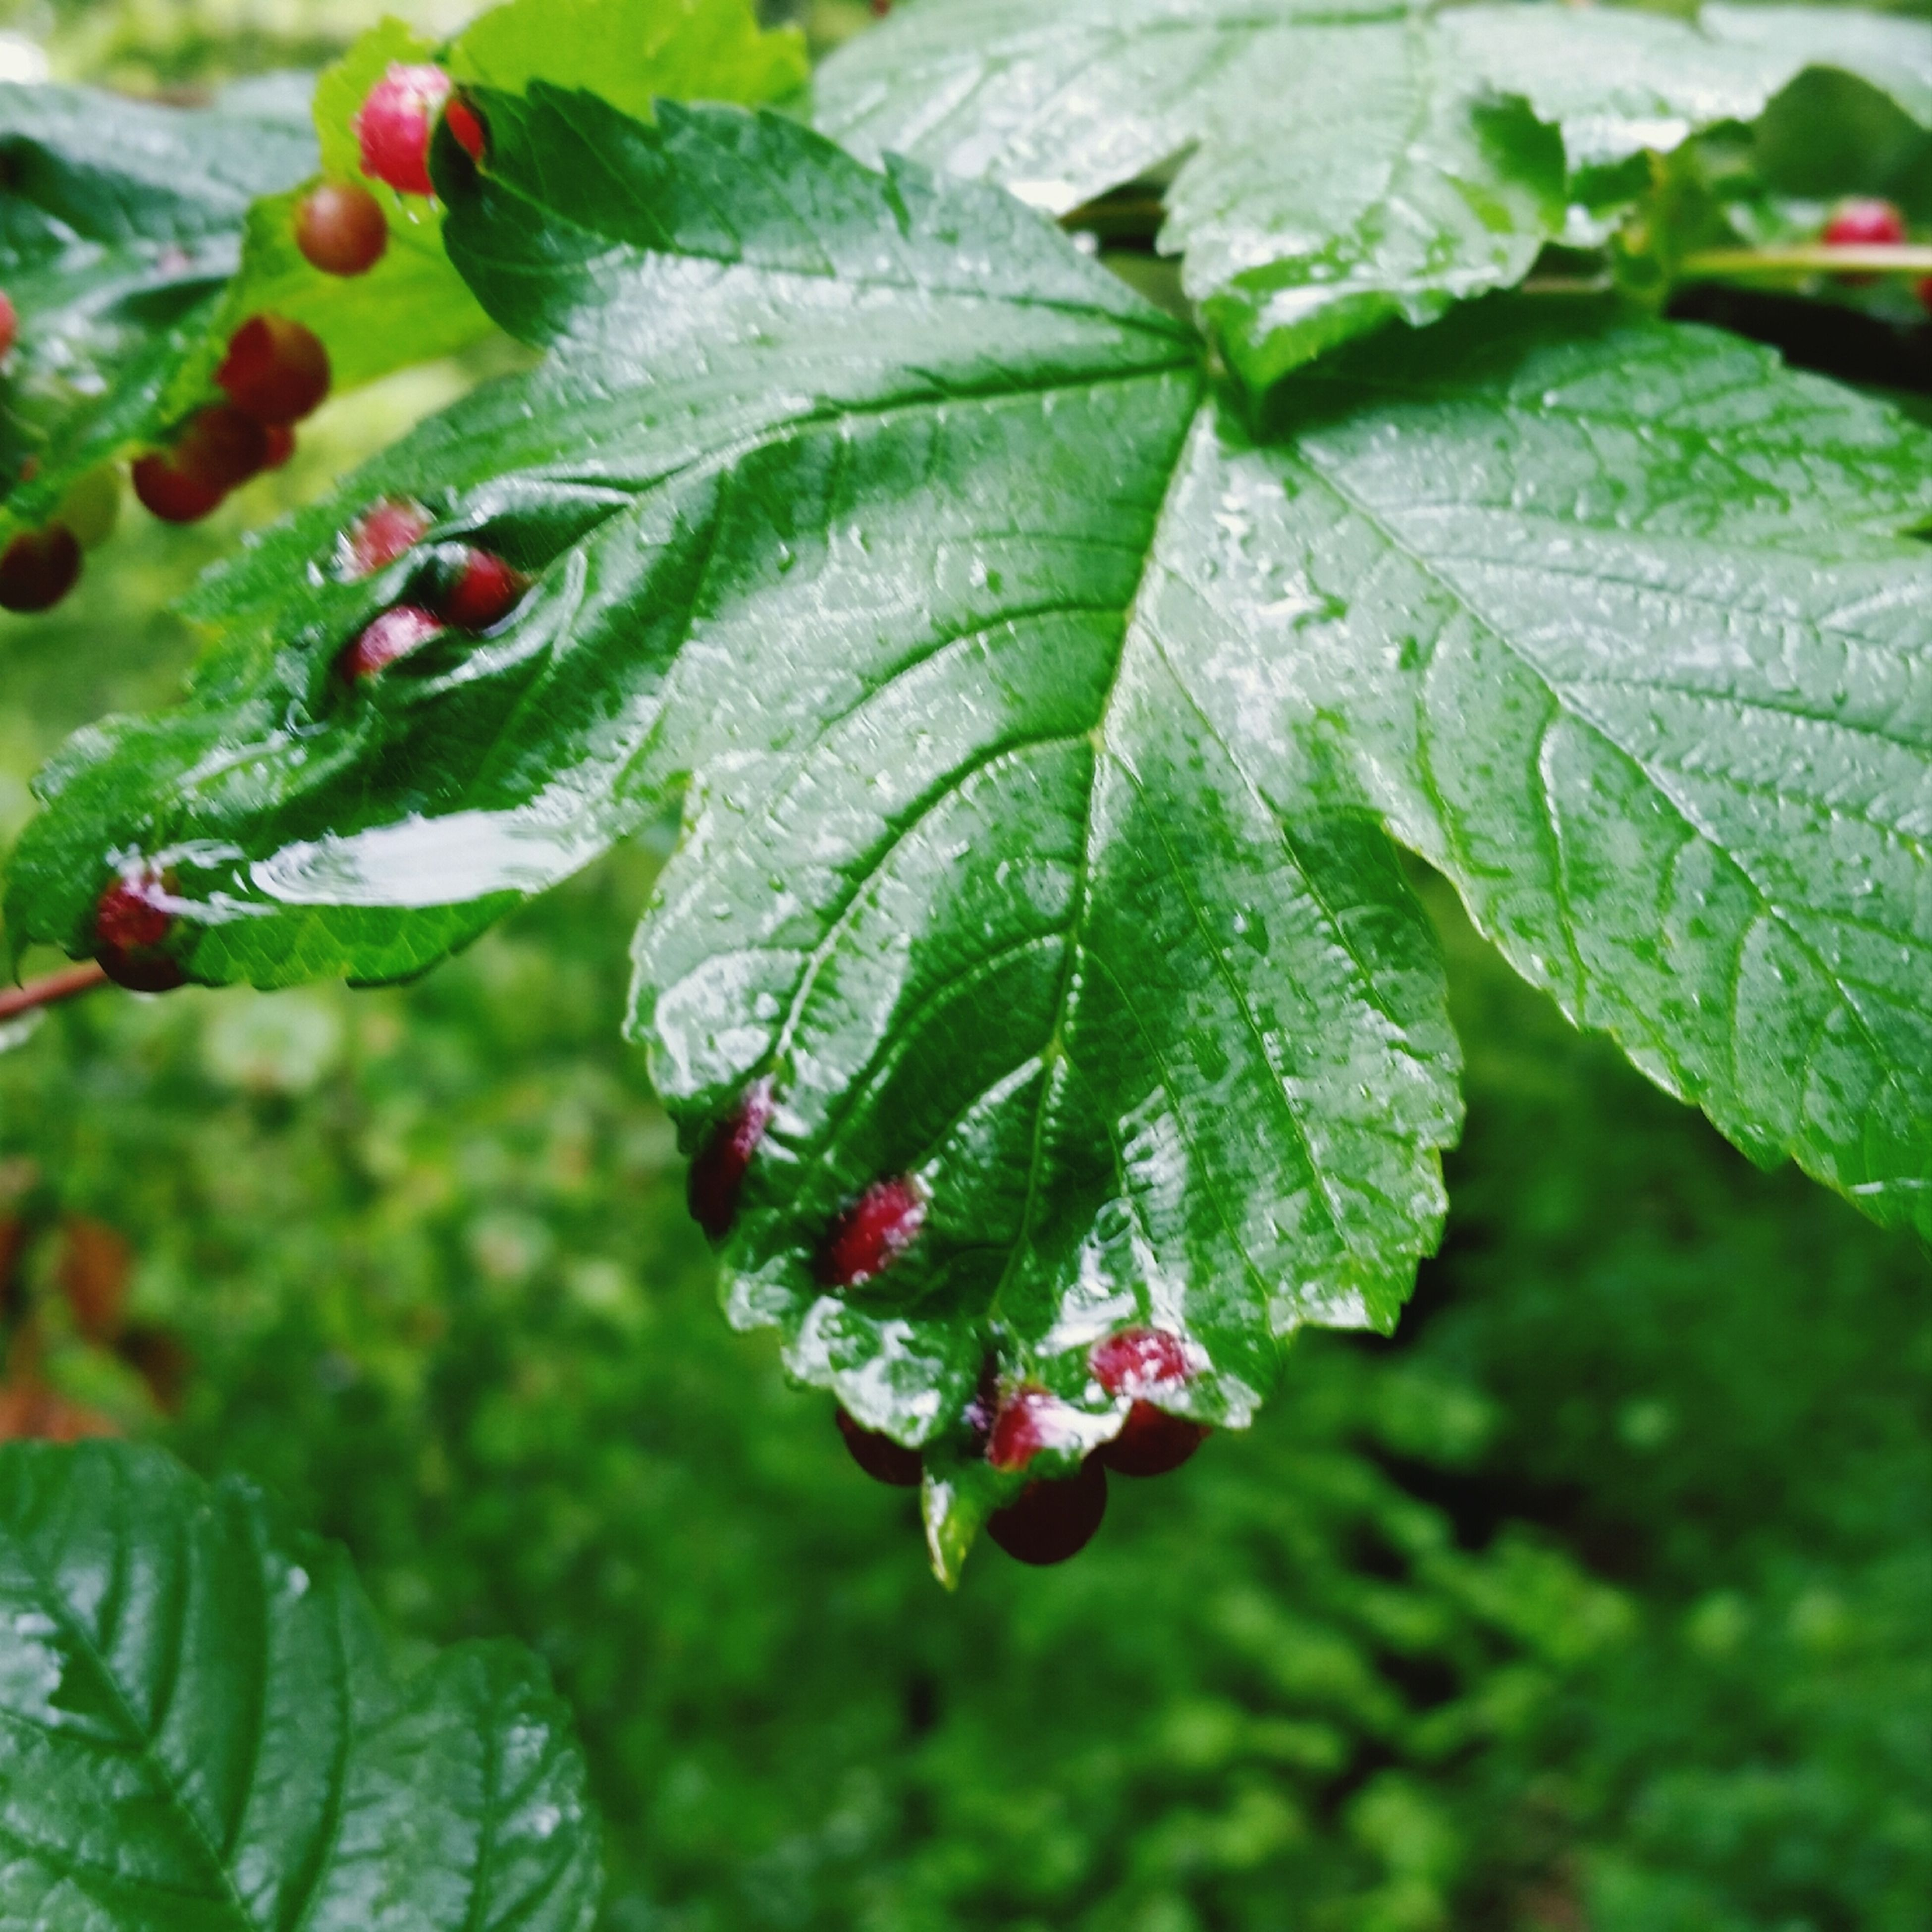 leaf, growth, close-up, freshness, drop, green color, plant, wet, water, nature, beauty in nature, focus on foreground, dew, selective focus, fragility, day, no people, leaf vein, green, red